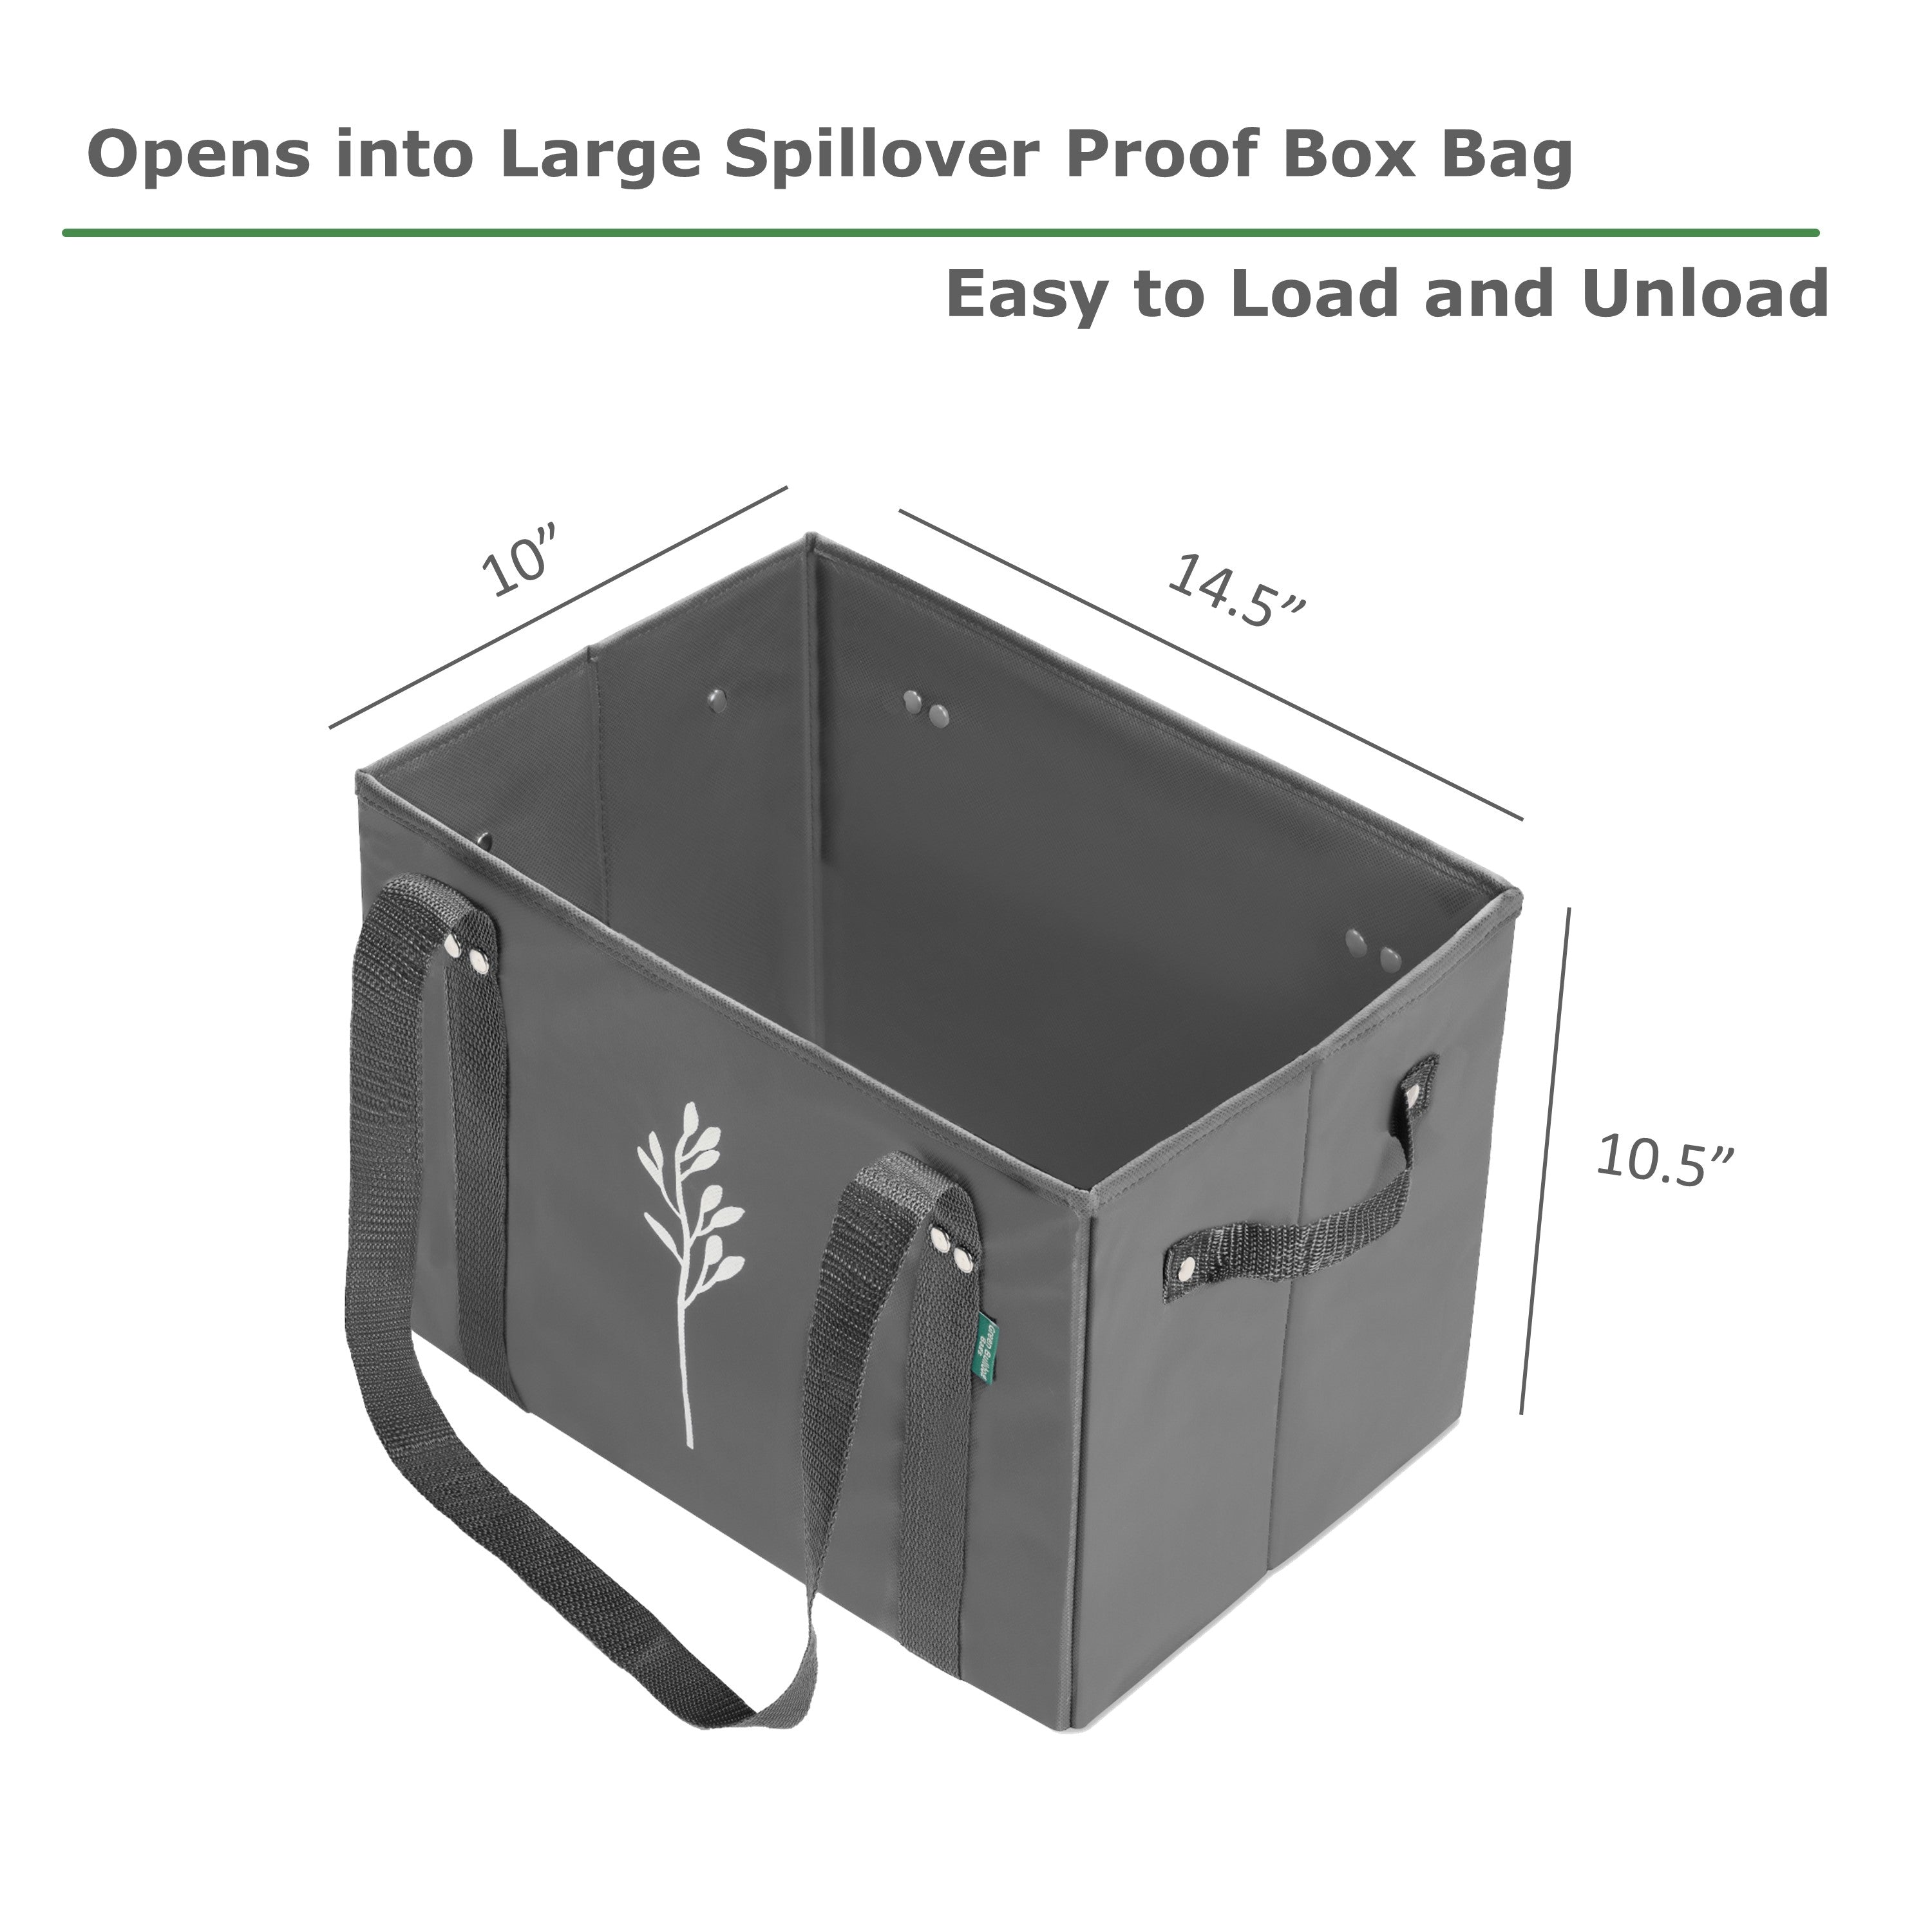 Reusable Grocery Bags Open into Spillover Proof Box Bag for Easy Loading and Unloading